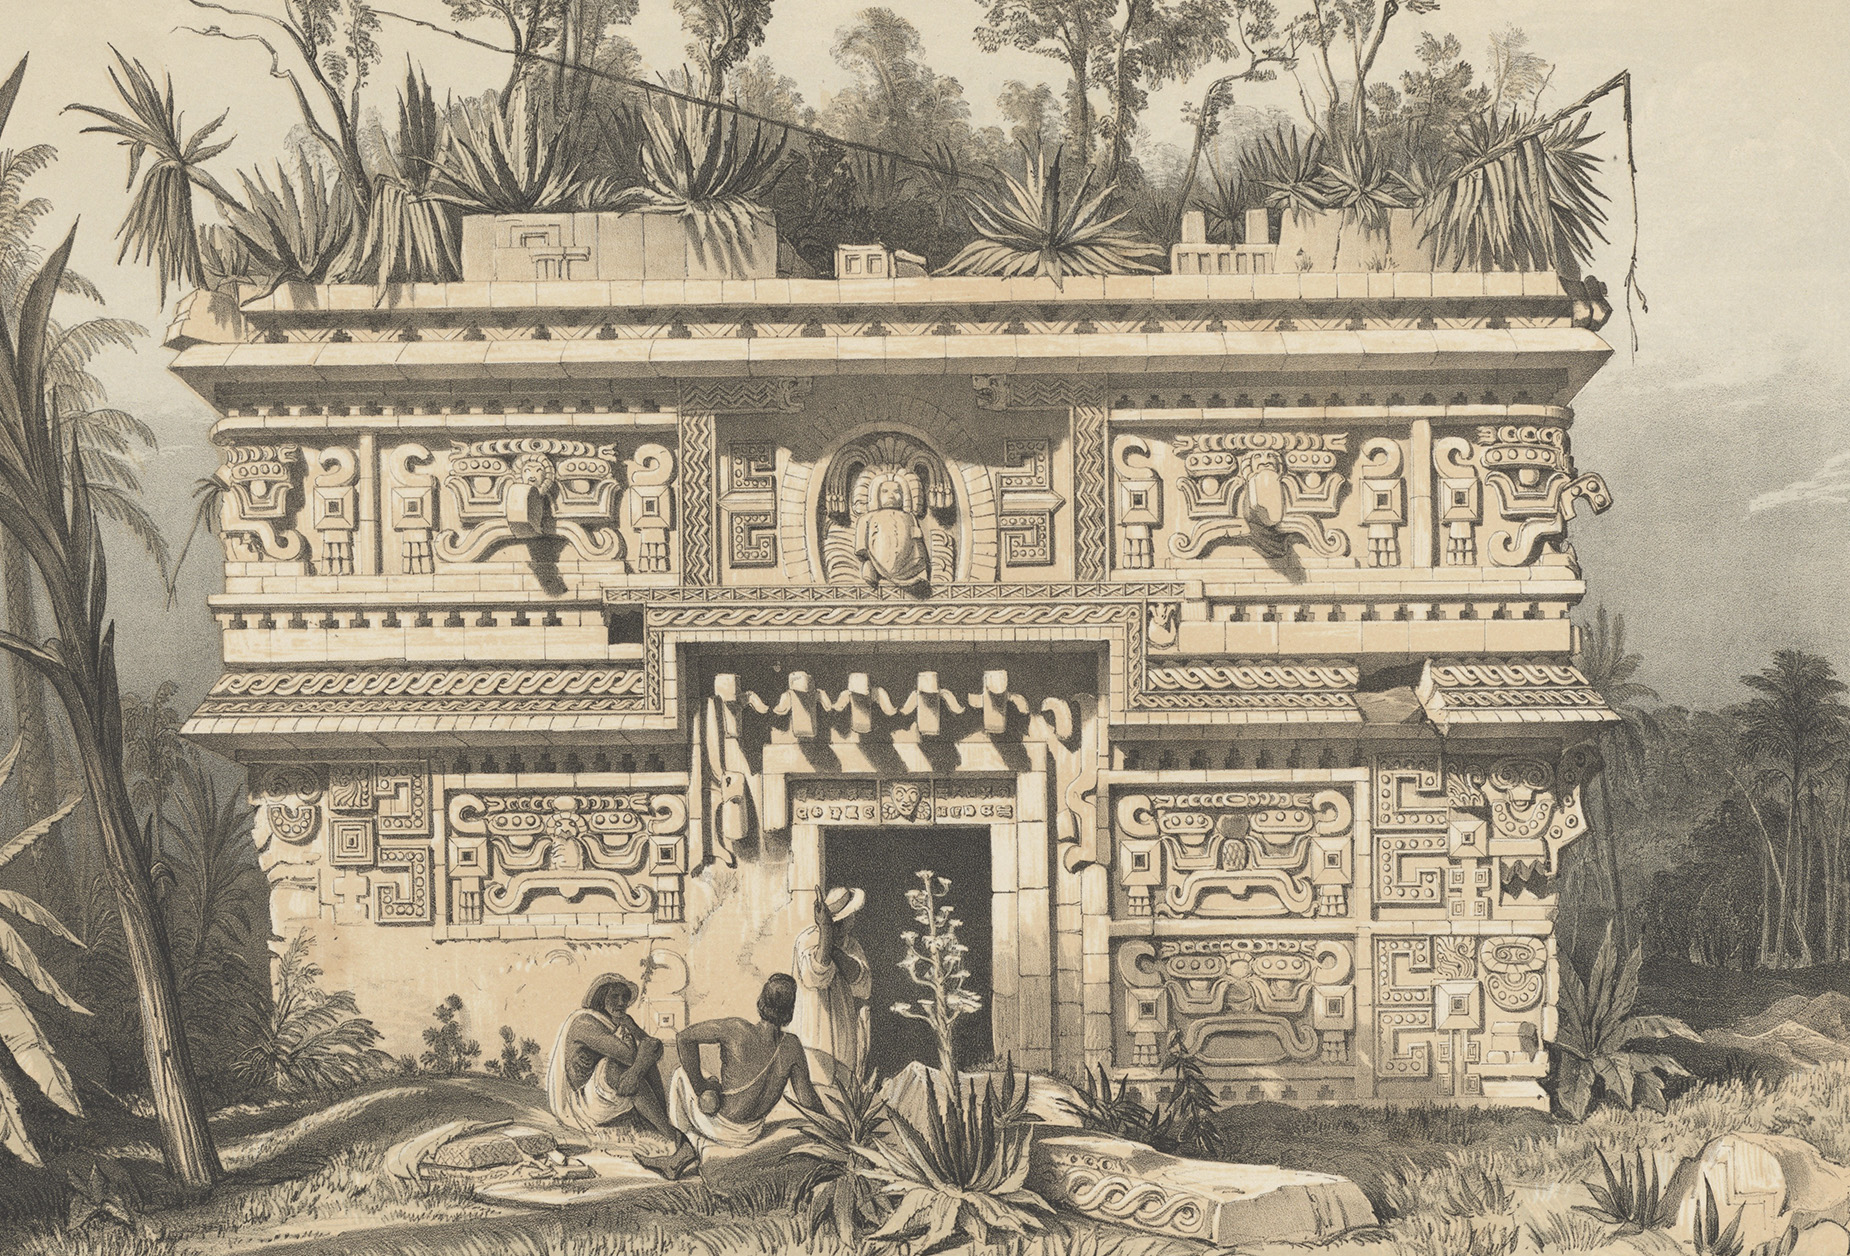 Las Monjas, Chichen-Itza, lithograph on stone by G. Moore, based on artwork by Frederick Catherwood, from Catherwood 1844, pl. XXI.